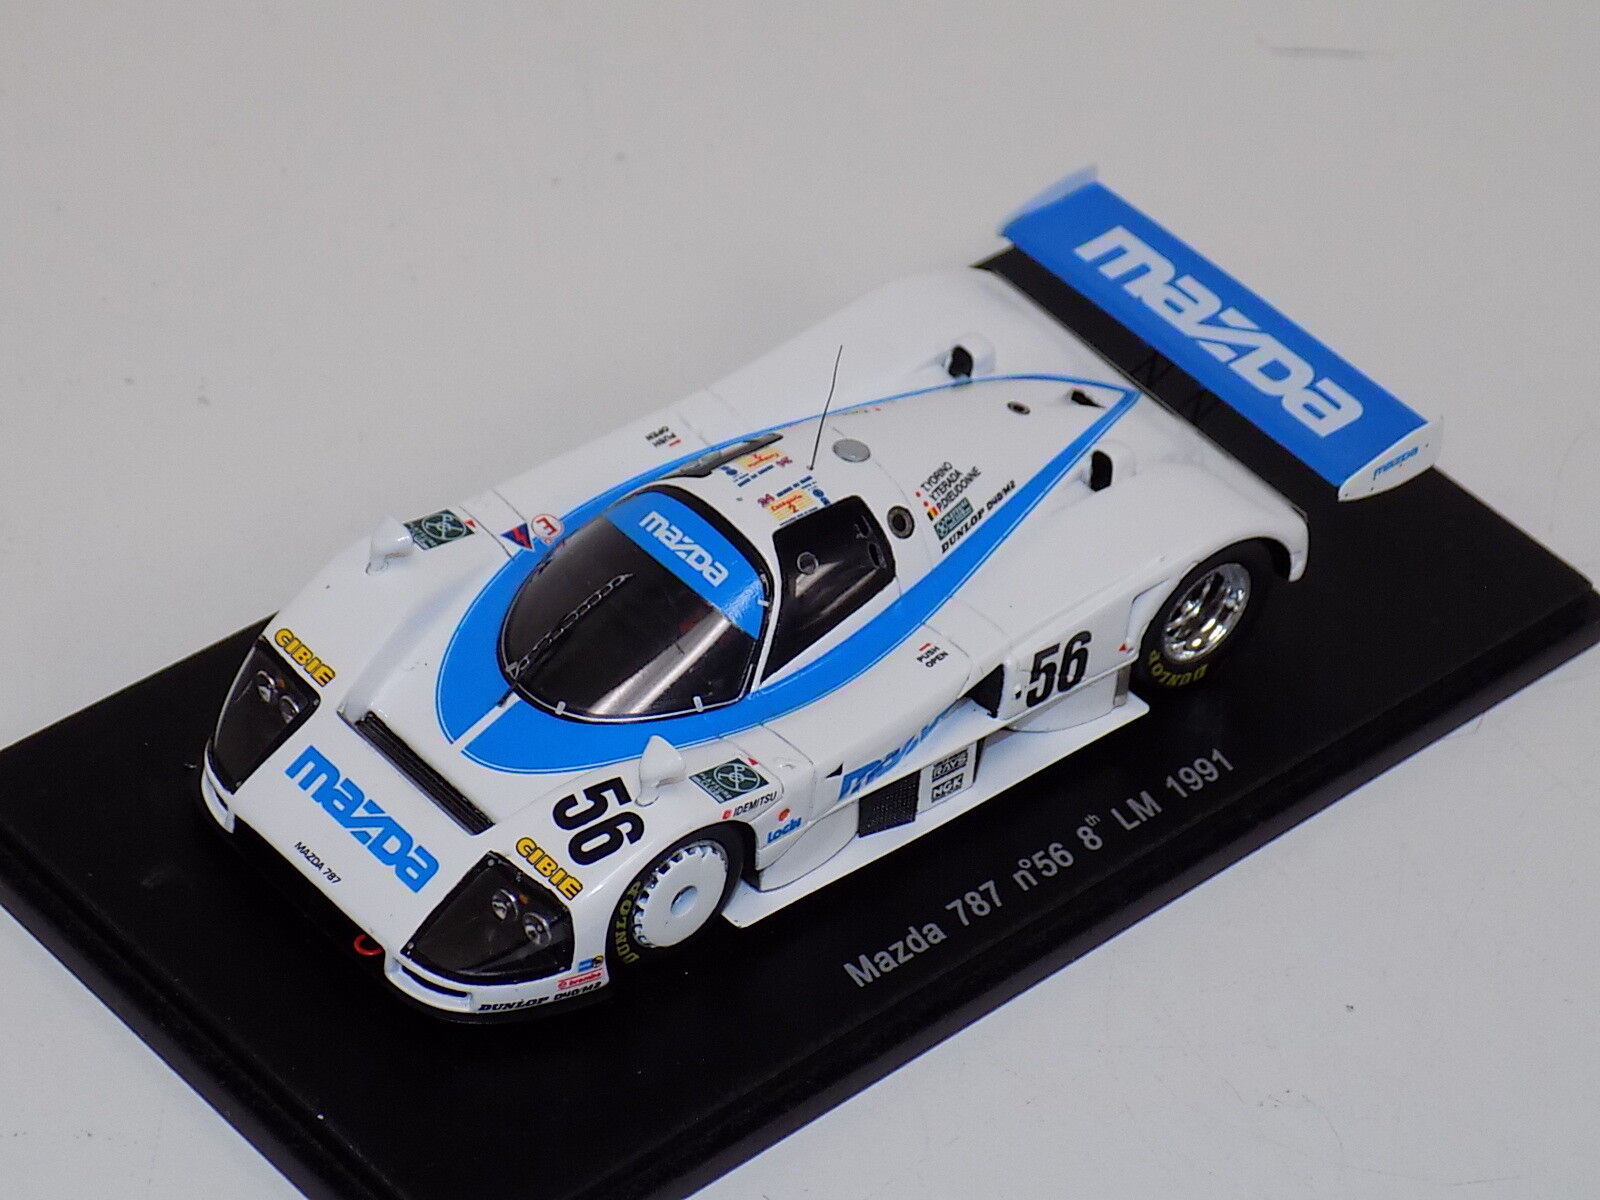 1/43 Spark Mazda 757 car   56 8th in 1991 24 Hours of LeMans  S0649